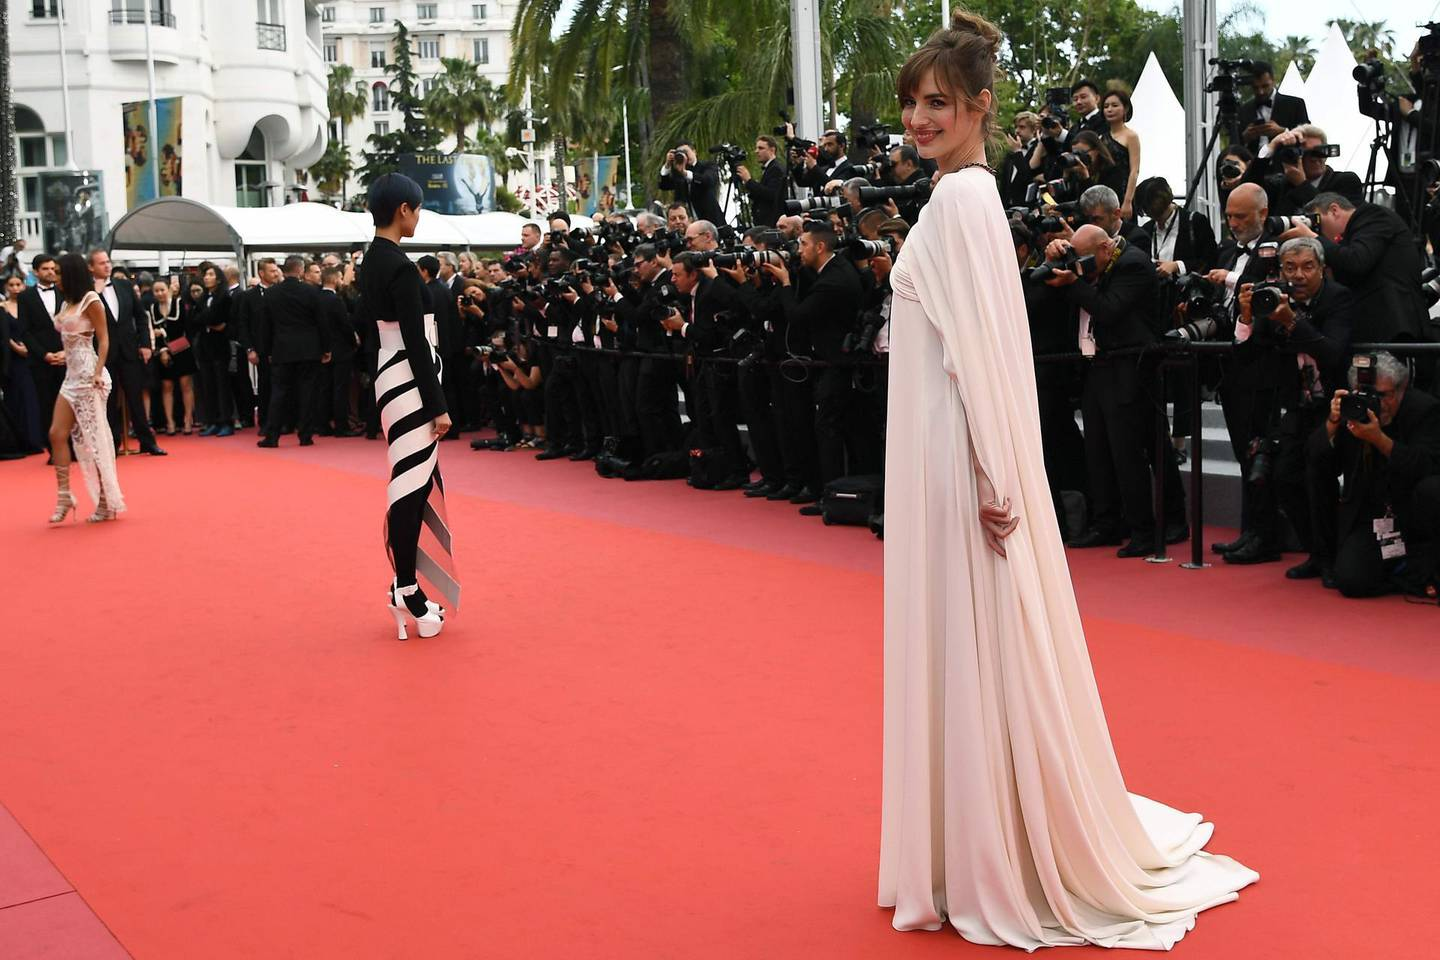 """(FromR) French actress Louise Bourgoin, Chinese actress and singer Li Yuchun and US actress Chantel Jeffries pose as they arrive on May 9, 2018 for the screening of the film """"Yomeddine"""" at the 71st edition of the Cannes Film Festival in Cannes, southern France.  / AFP PHOTO / Anne-Christine POUJOULAT"""